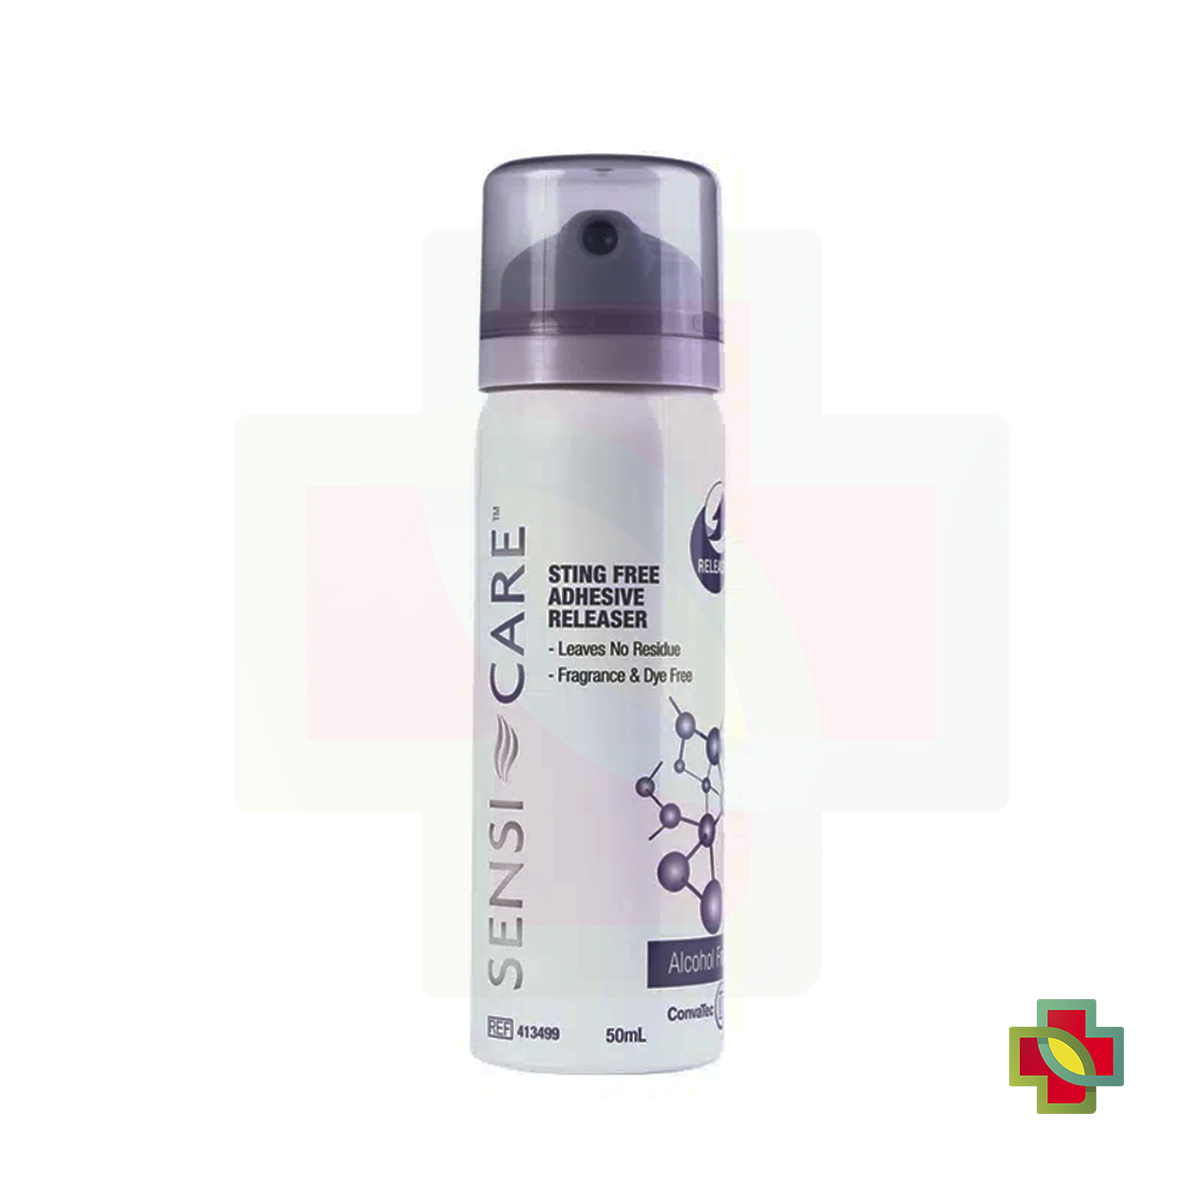 SENSI CARE SPRAY REMOVEDOR 50 ML 413499 - CONVATEC